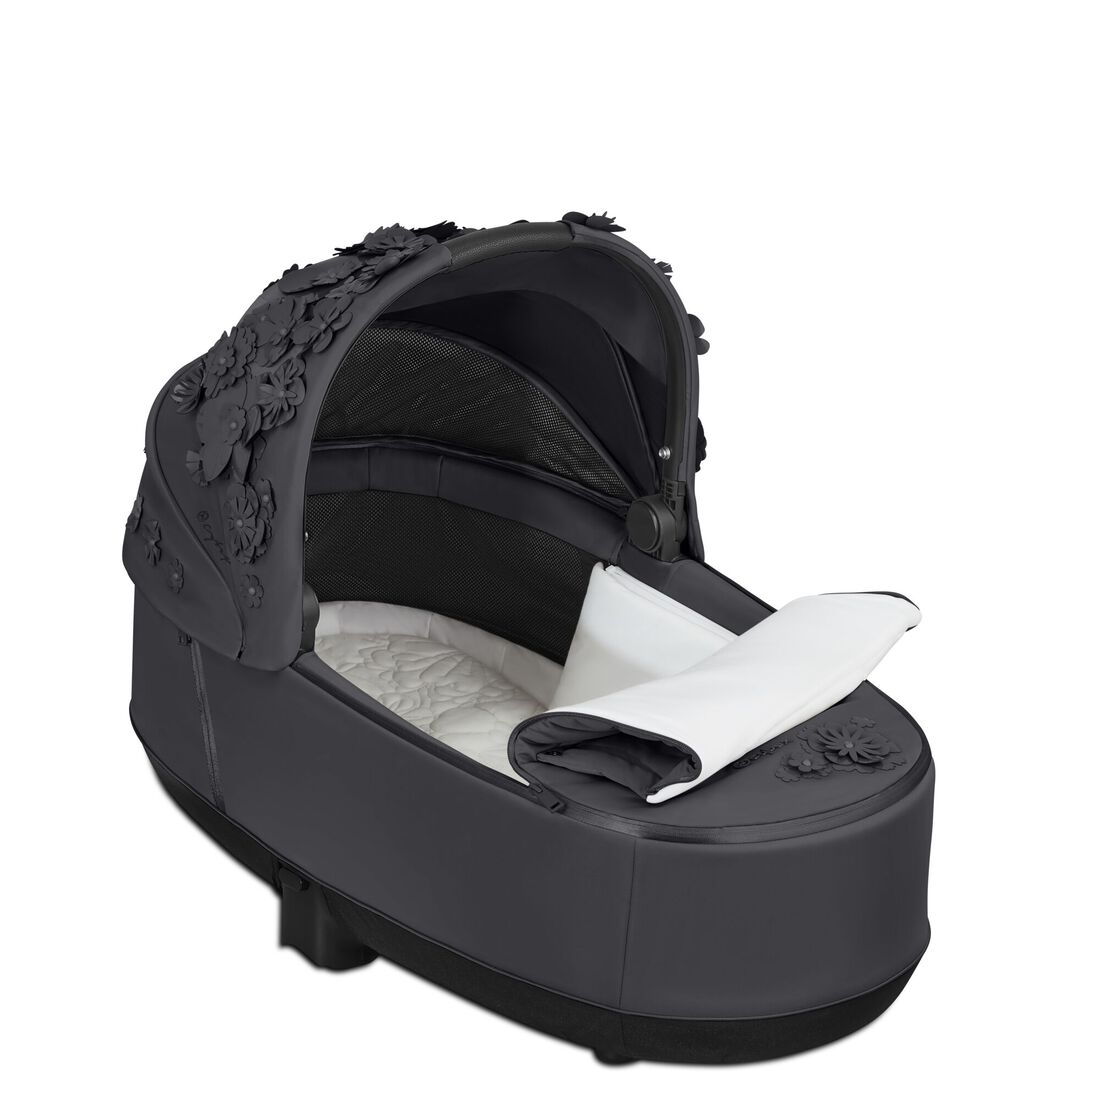 CYBEX Priam Lux Carry Cot - Dream Grey in Dream Grey large image number 3